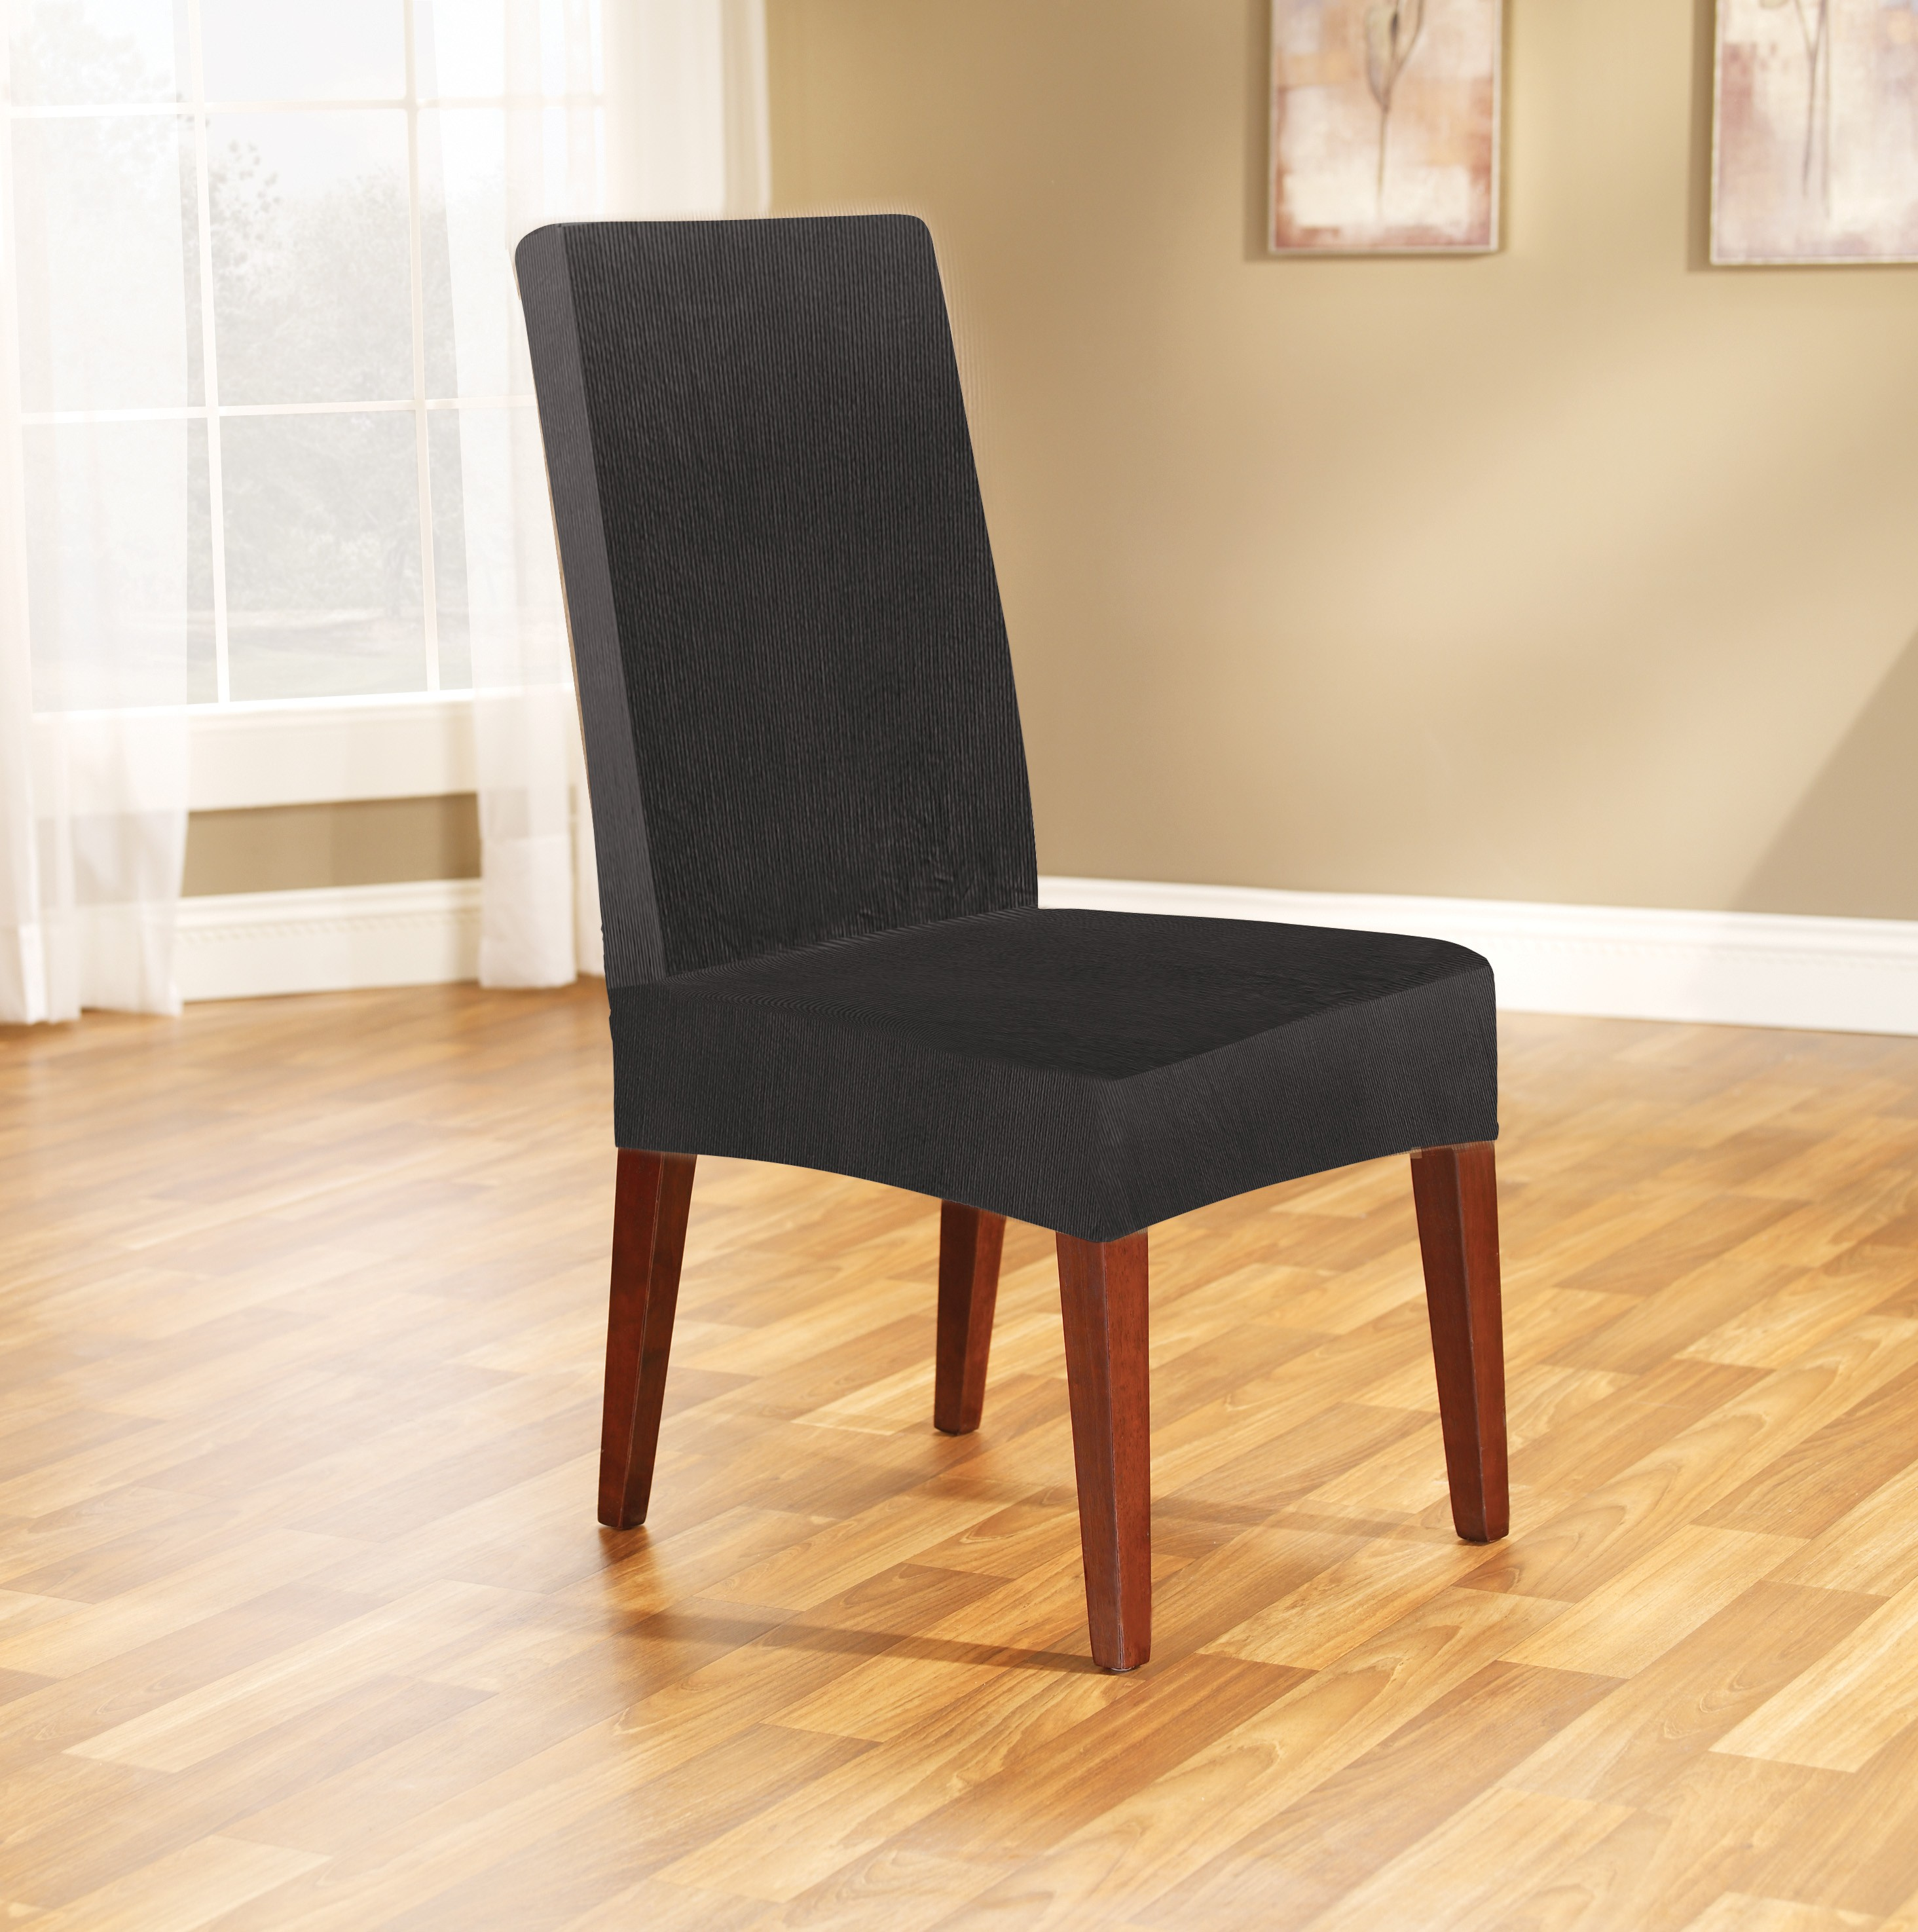 Ebony Dining Chair Cover by Surefit